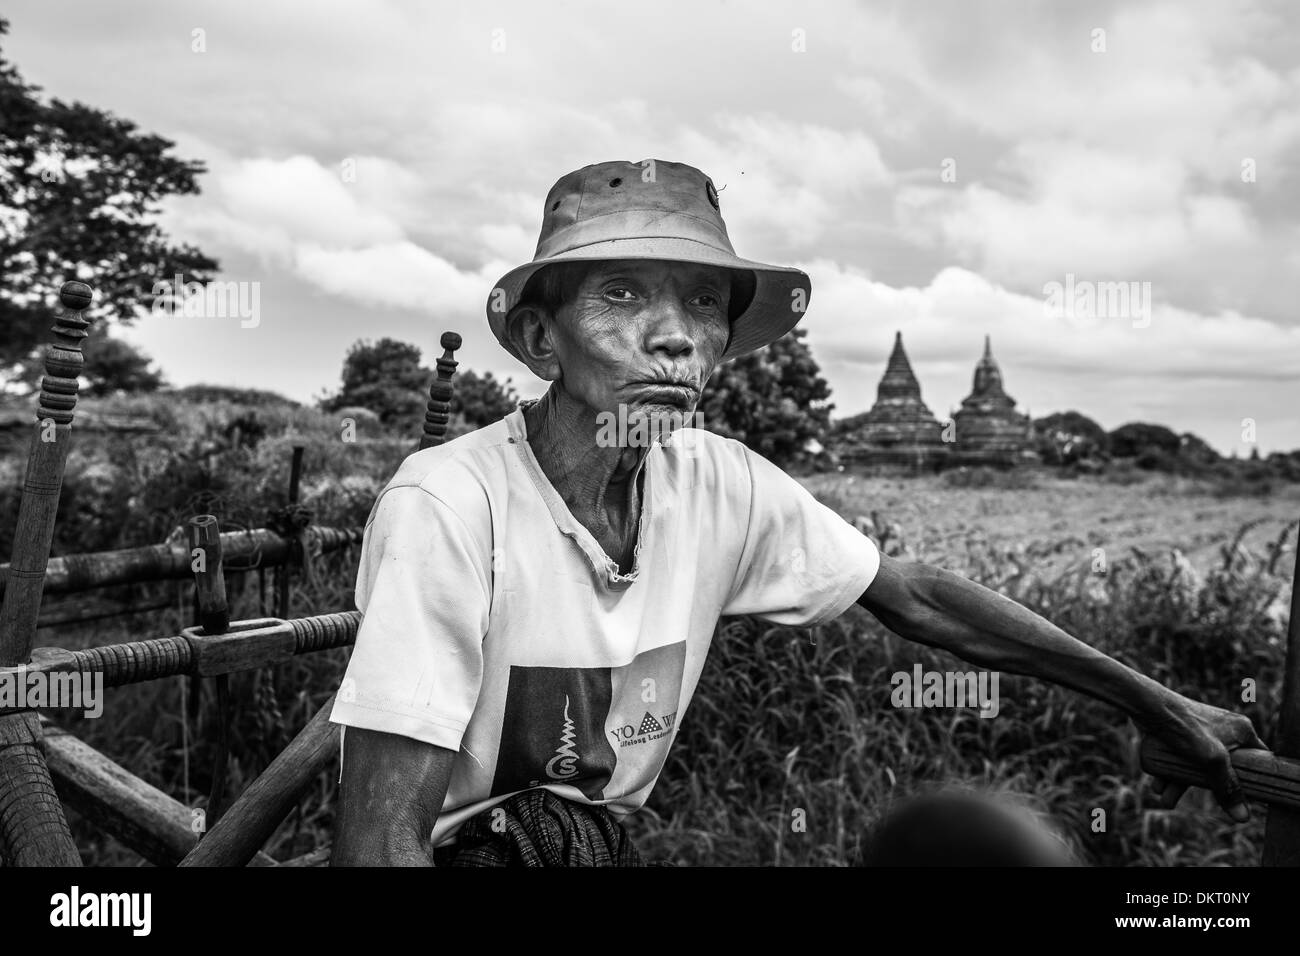 A farmer sits outside the temples in Bagan, Myanmar (Burma) - Stock Image